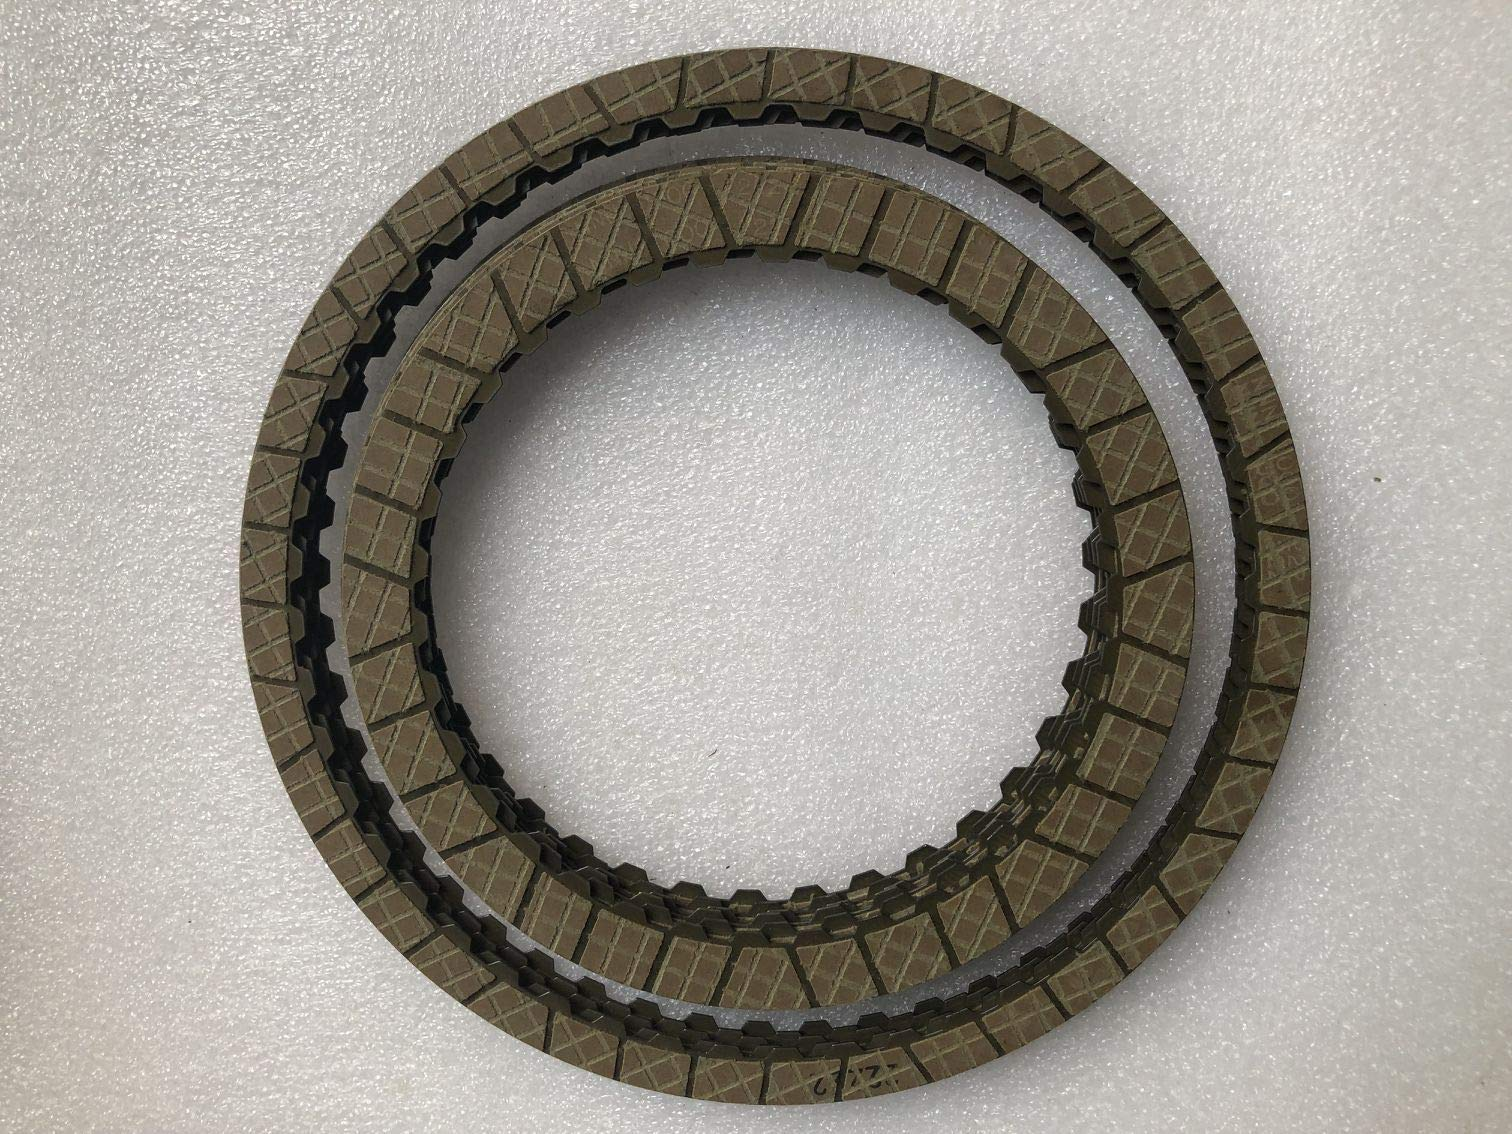 0aw cvt Gearbox Clutch Friction Plate 0aw Transmission Friction Kit